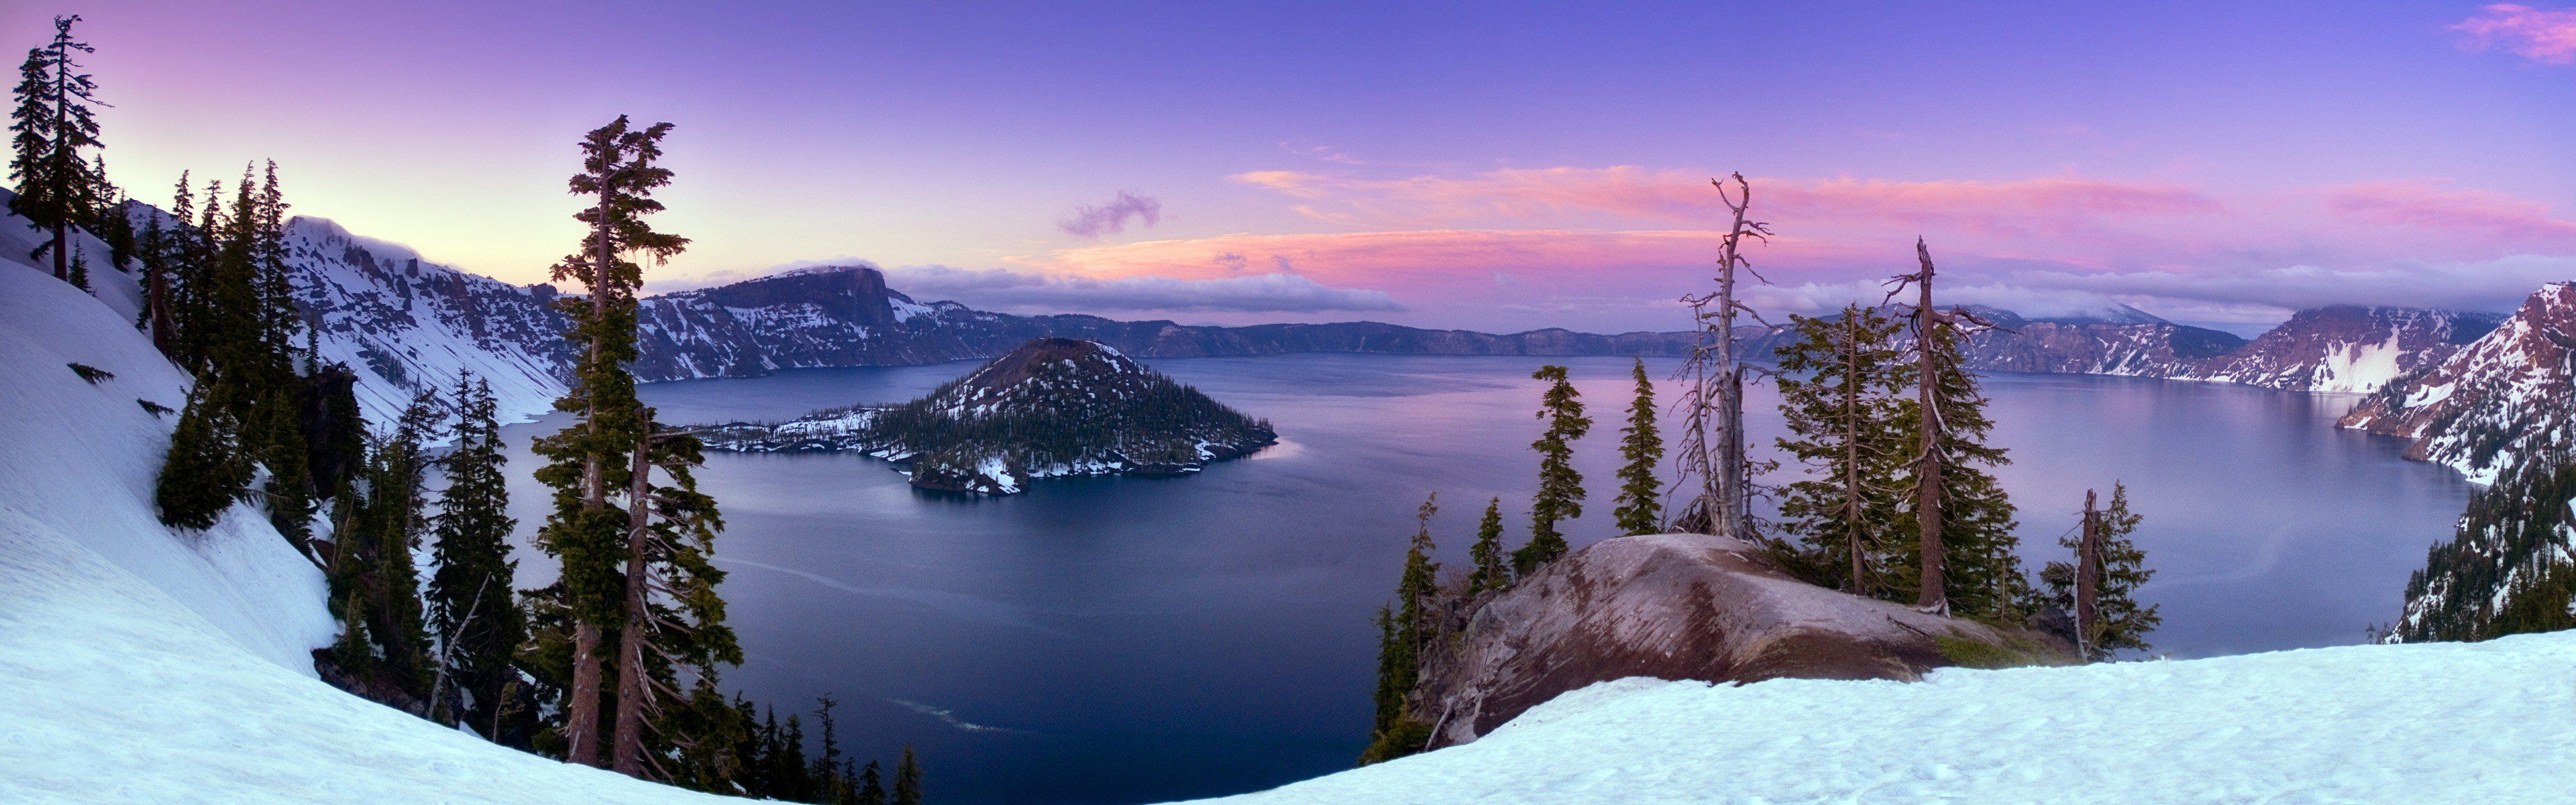 crater lake wallpaper hd oregonunited states | 3d wallpapers